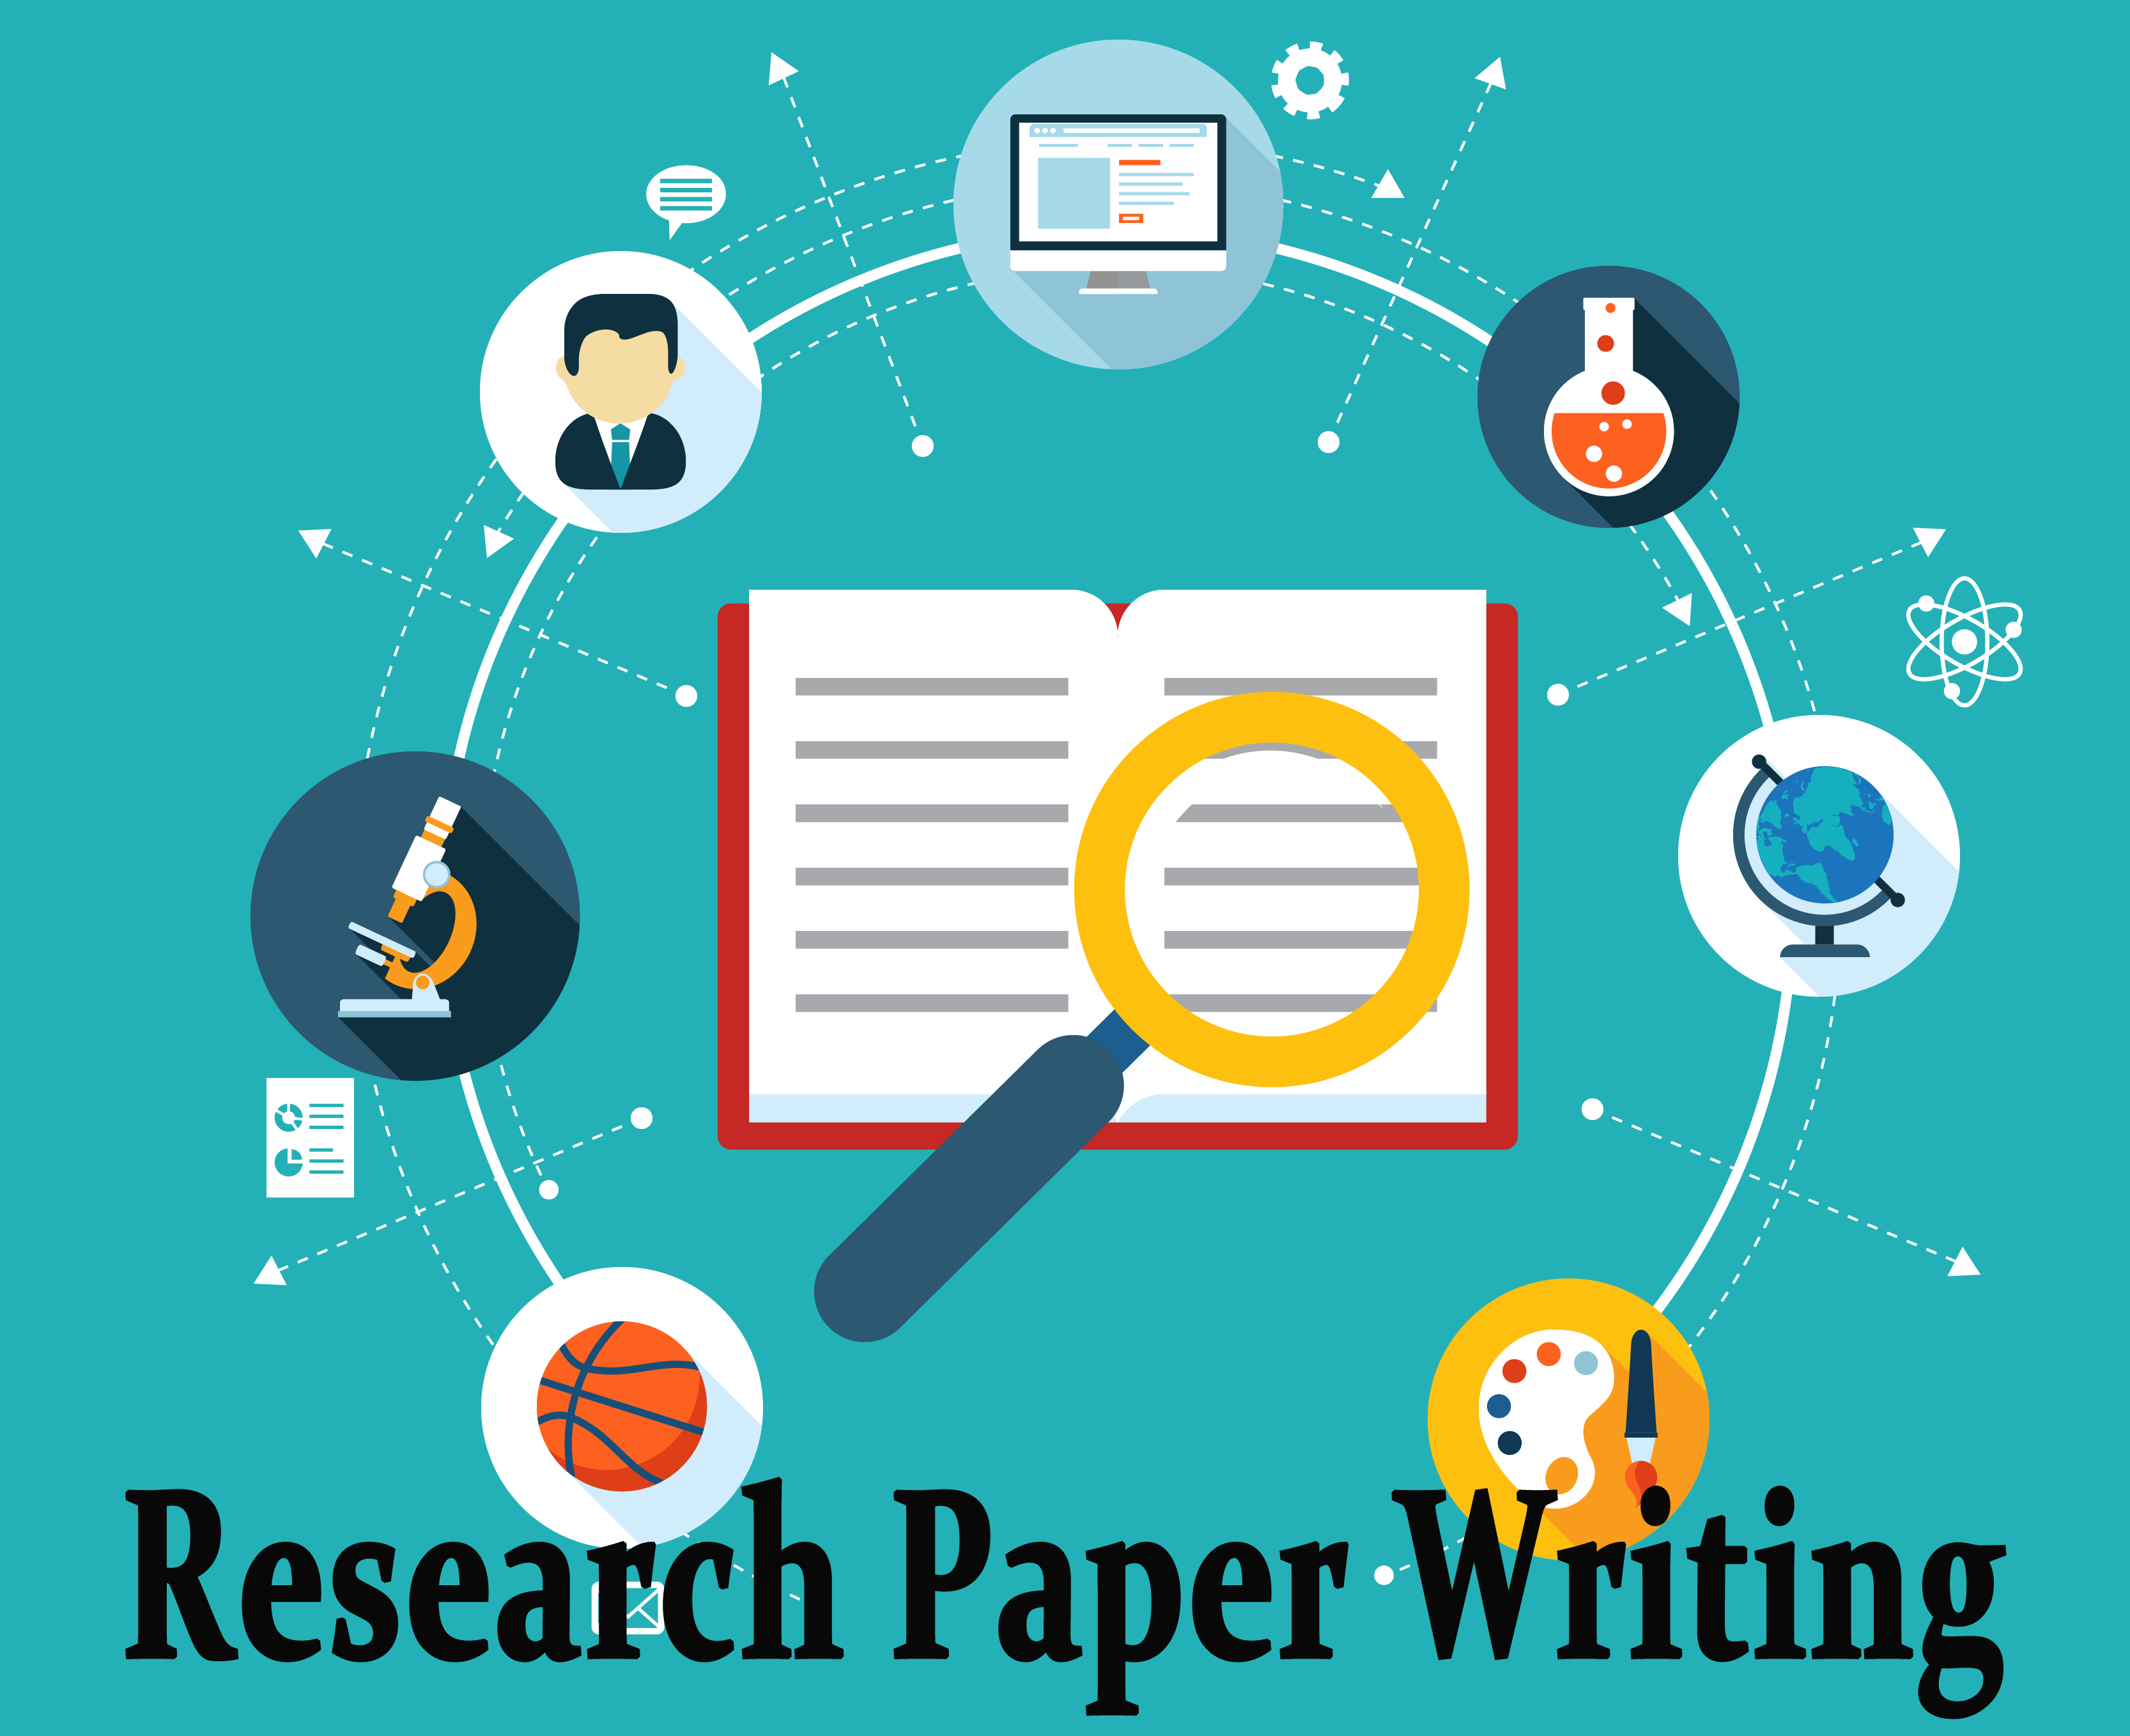 002 Help On Writing Research Paper 503 Effective Frightening A My Introduction Full